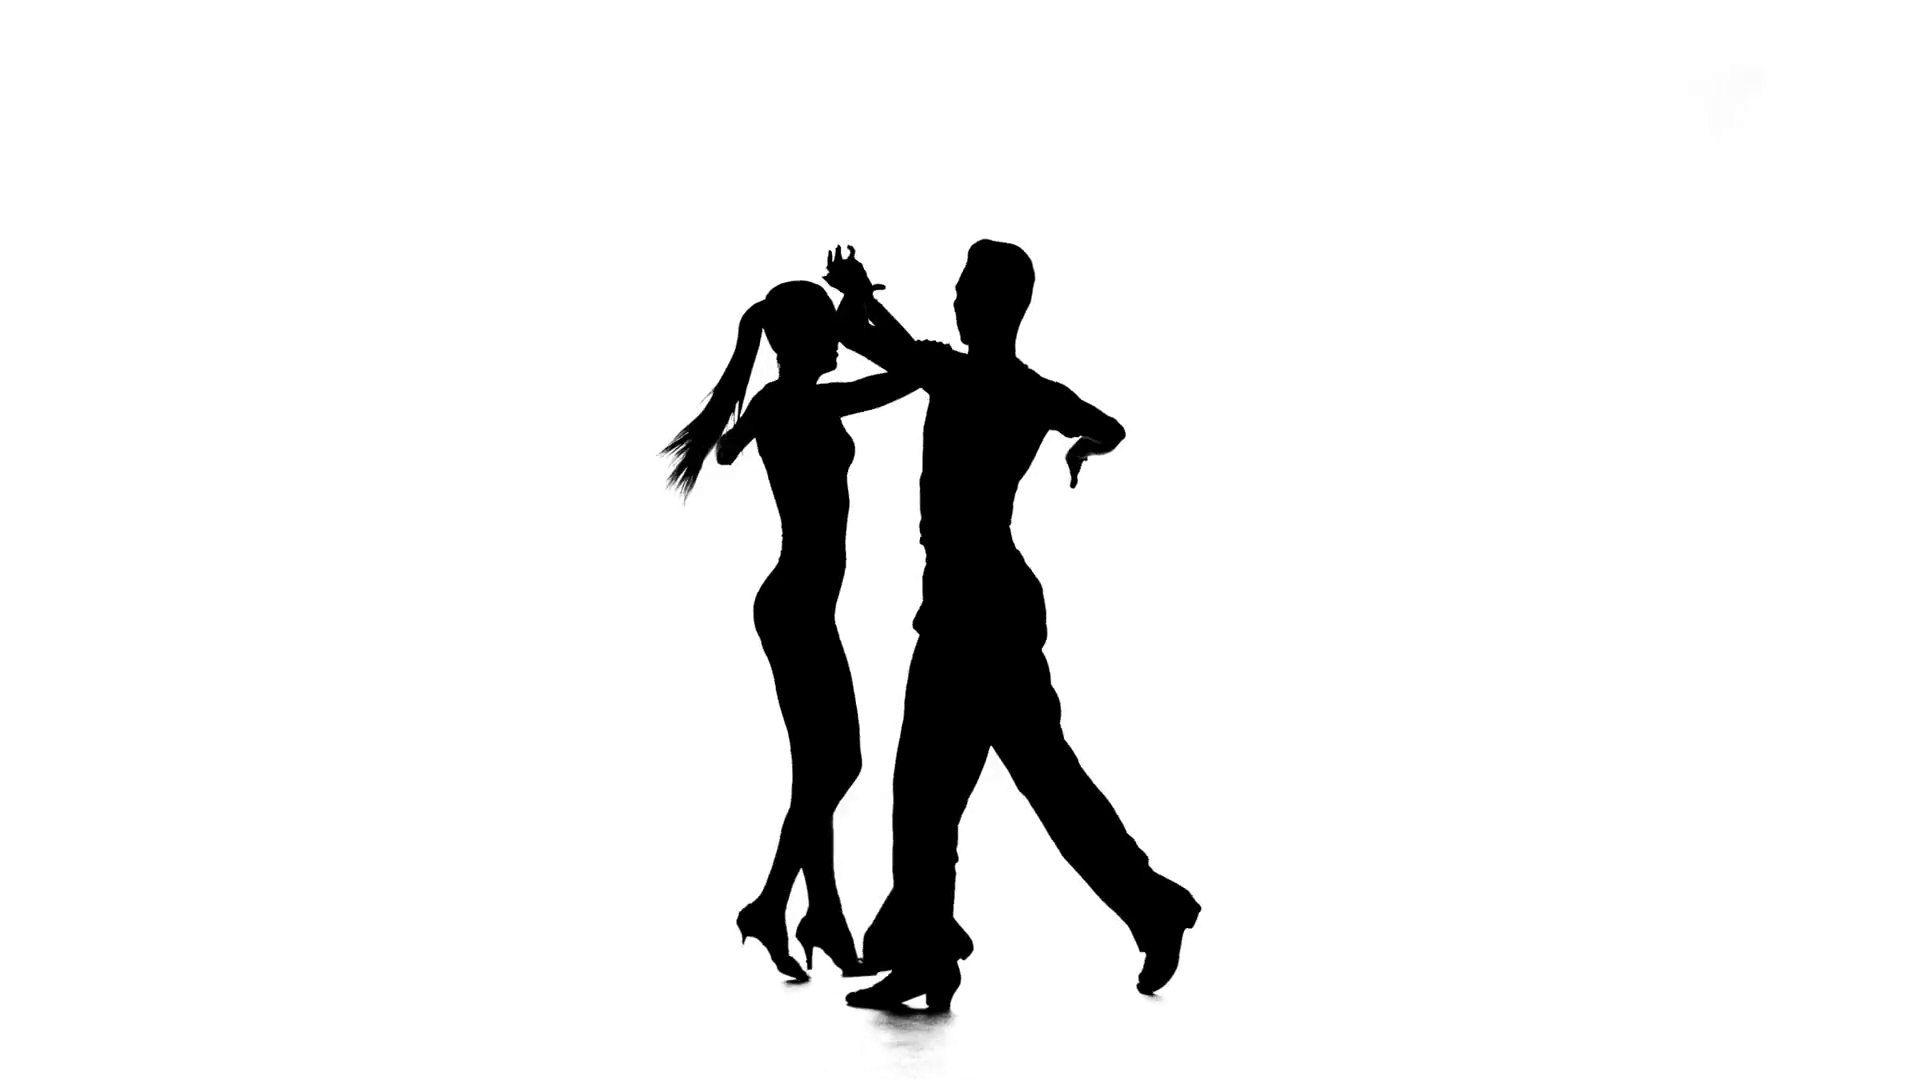 1920x1080 Dance Element From The Latino, Silhouette Couple Ballroom. White